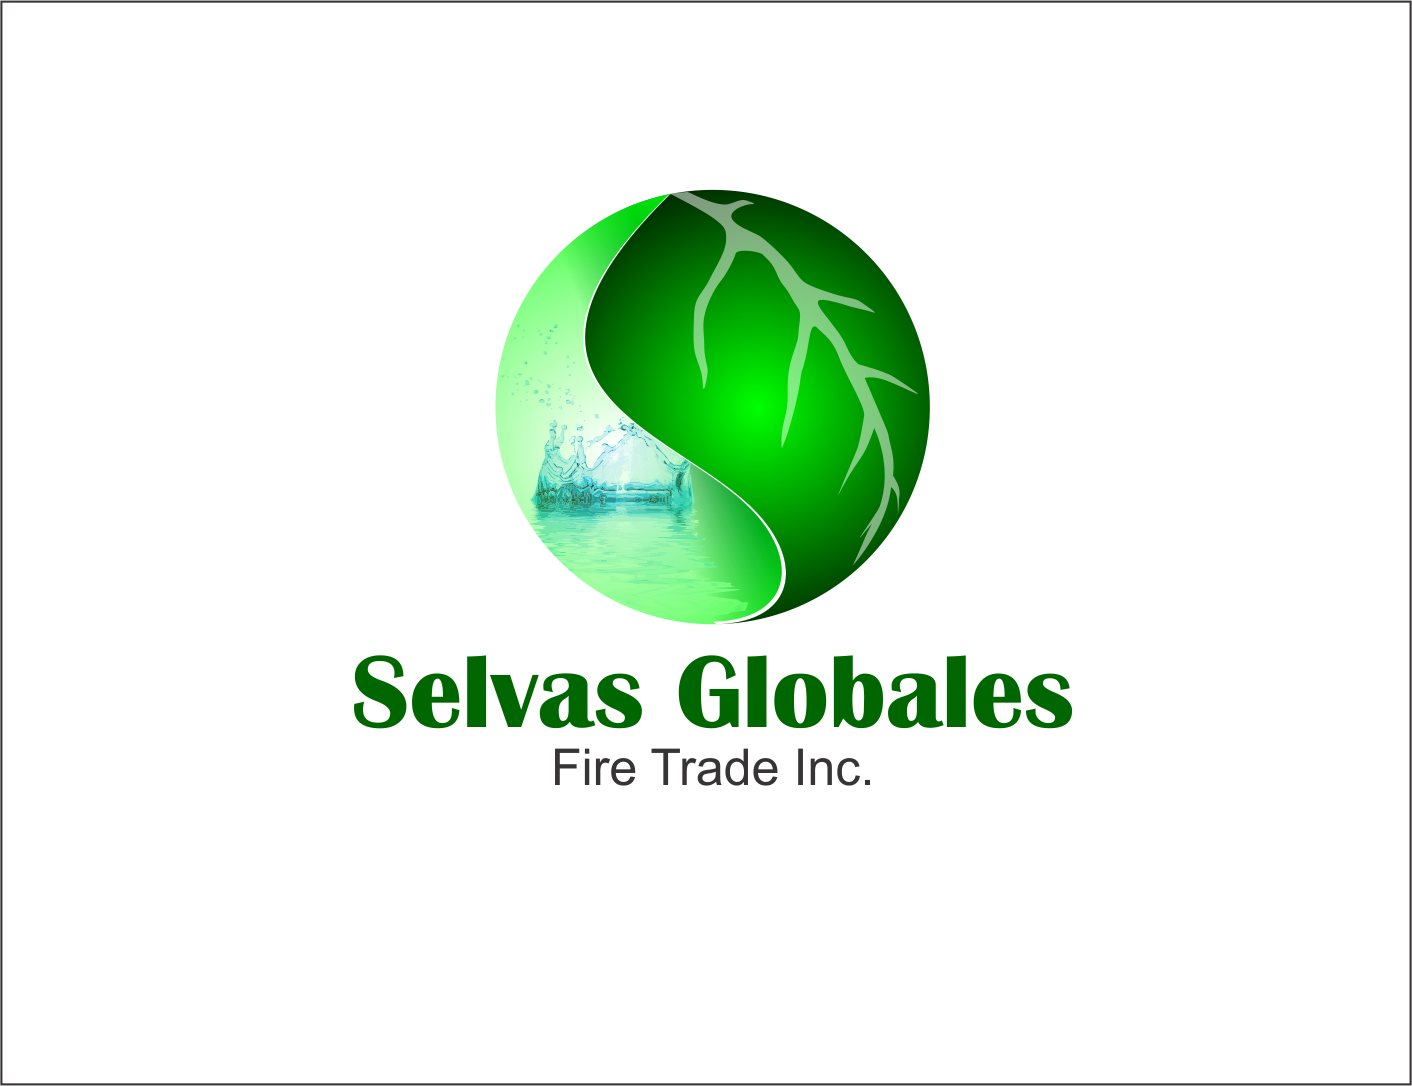 Logo Design by Agus Martoyo - Entry No. 124 in the Logo Design Contest Captivating Logo Design for Selvas Globales Fair Trade Inc..